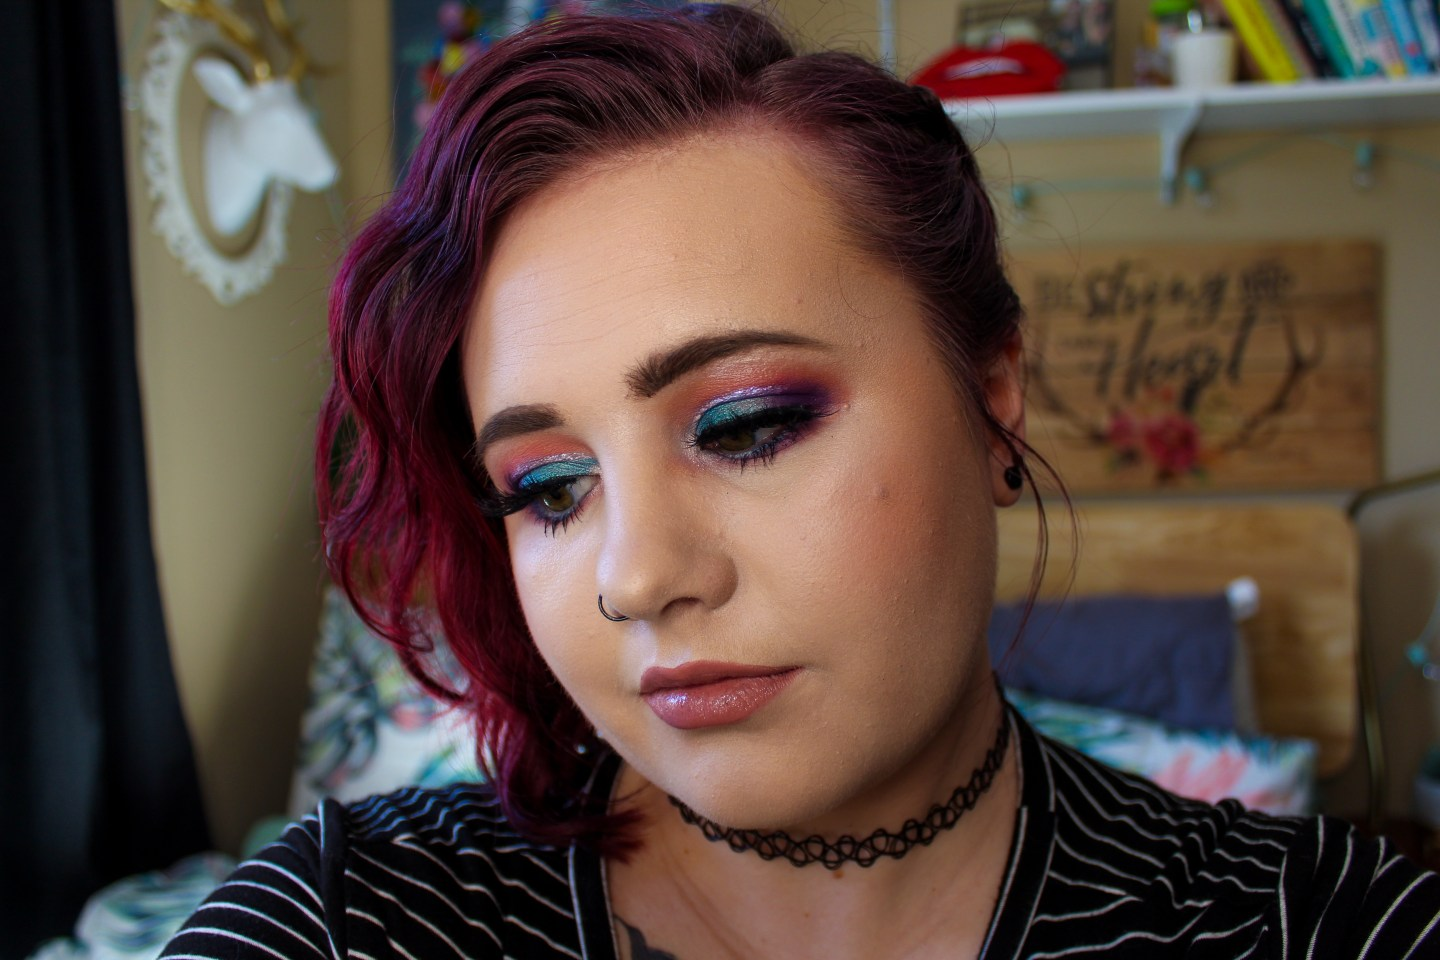 Makeup Battle: Urban Decay Primer Potion in Eden vs Makeup Revolution Cut Crease Canvas Eyeshadow Base in Illustrate 4